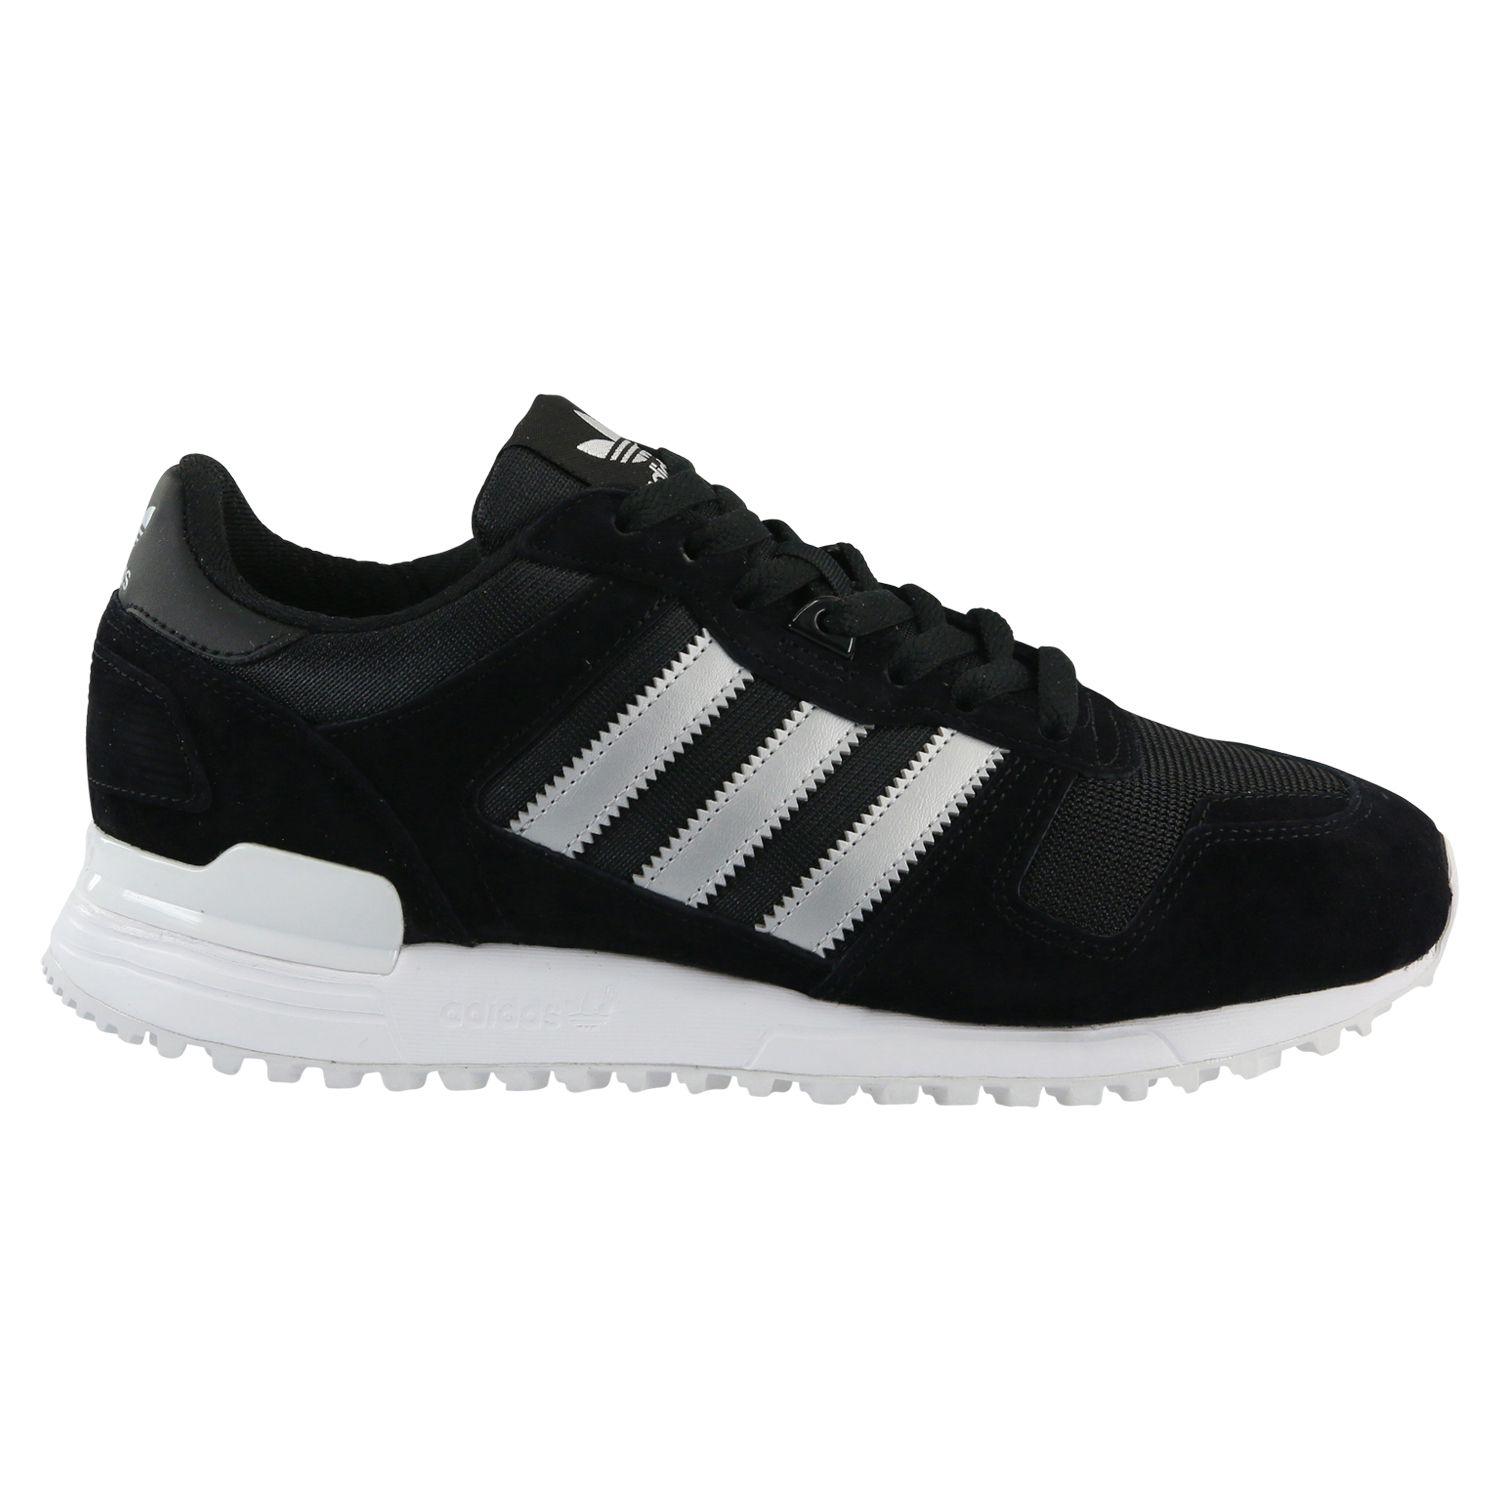 adidas originals zx 700 shoes trainers sneaker unisex mens. Black Bedroom Furniture Sets. Home Design Ideas